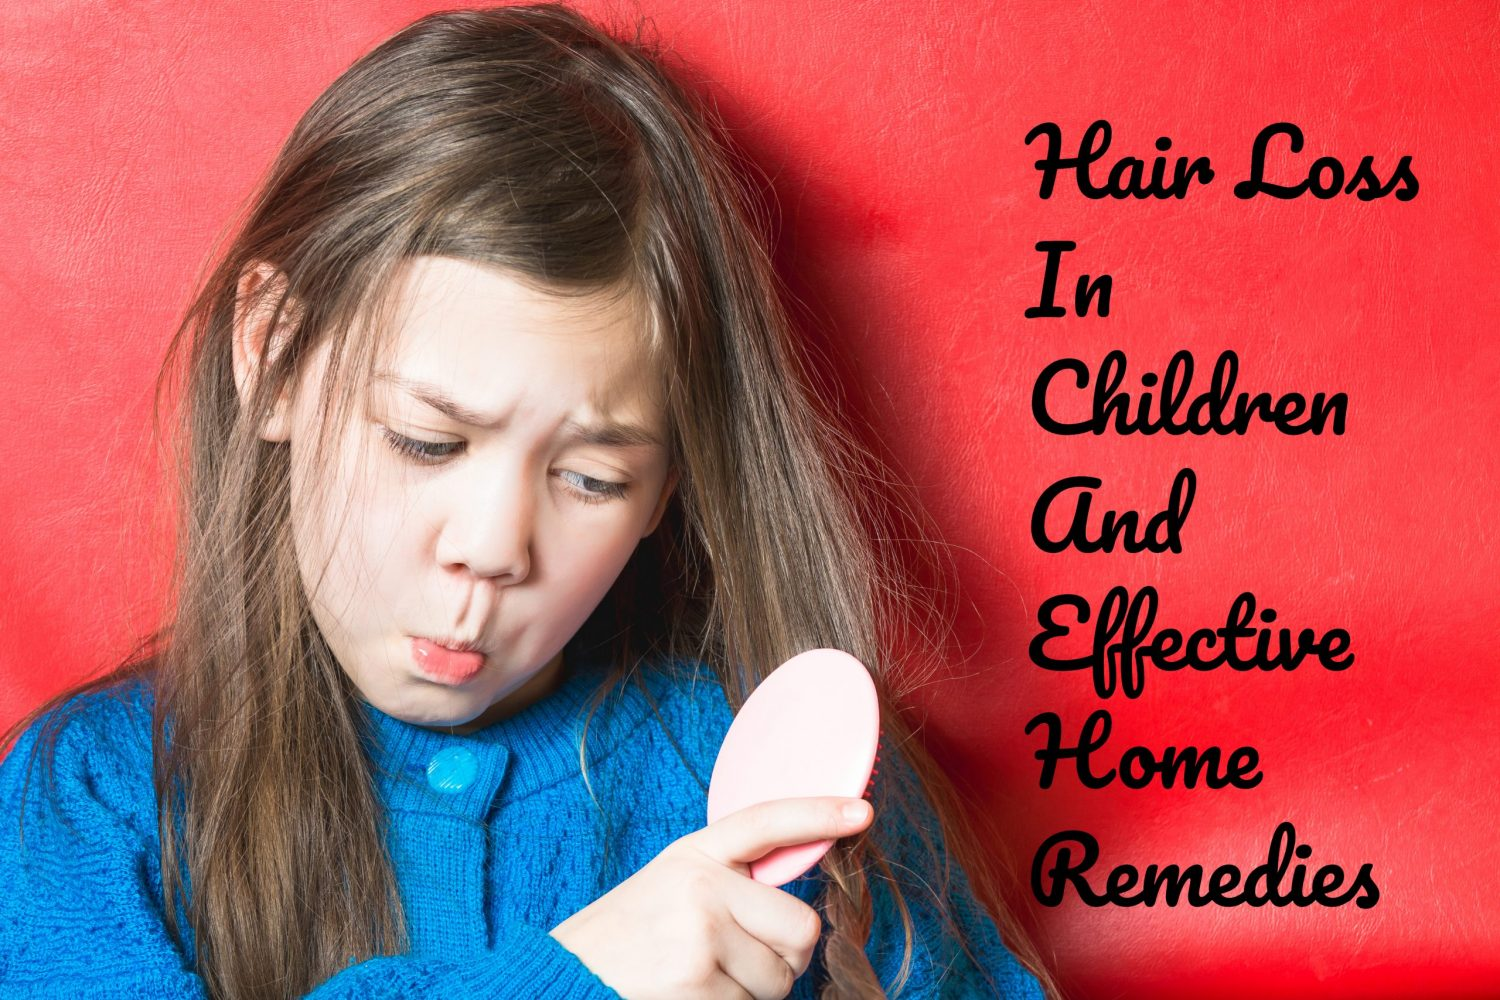 Hair Loss In Children And Effective Home Remedies